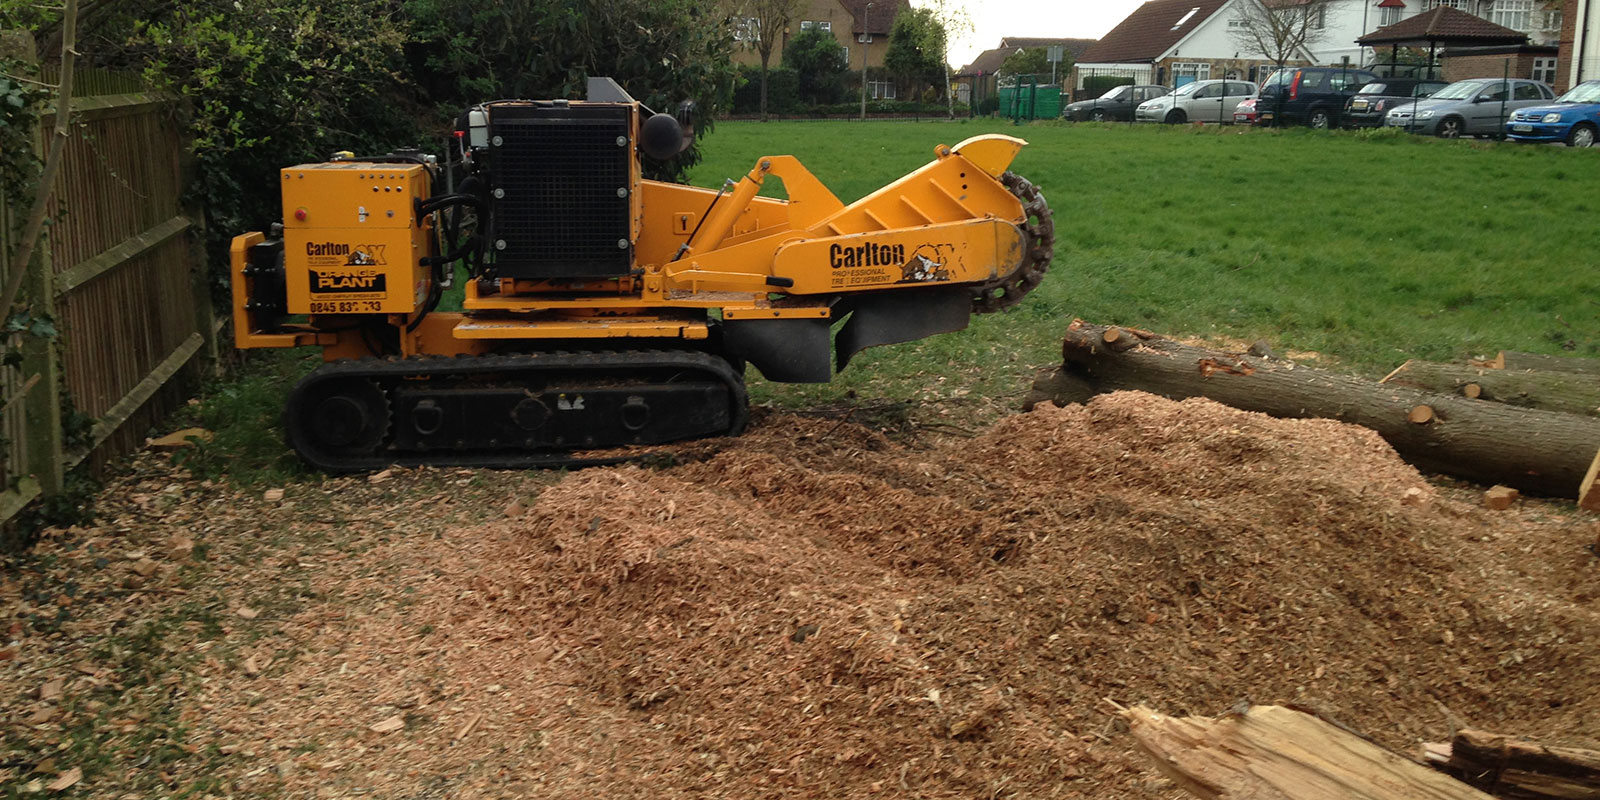 Stump Grinding Experts in Esher Surrey